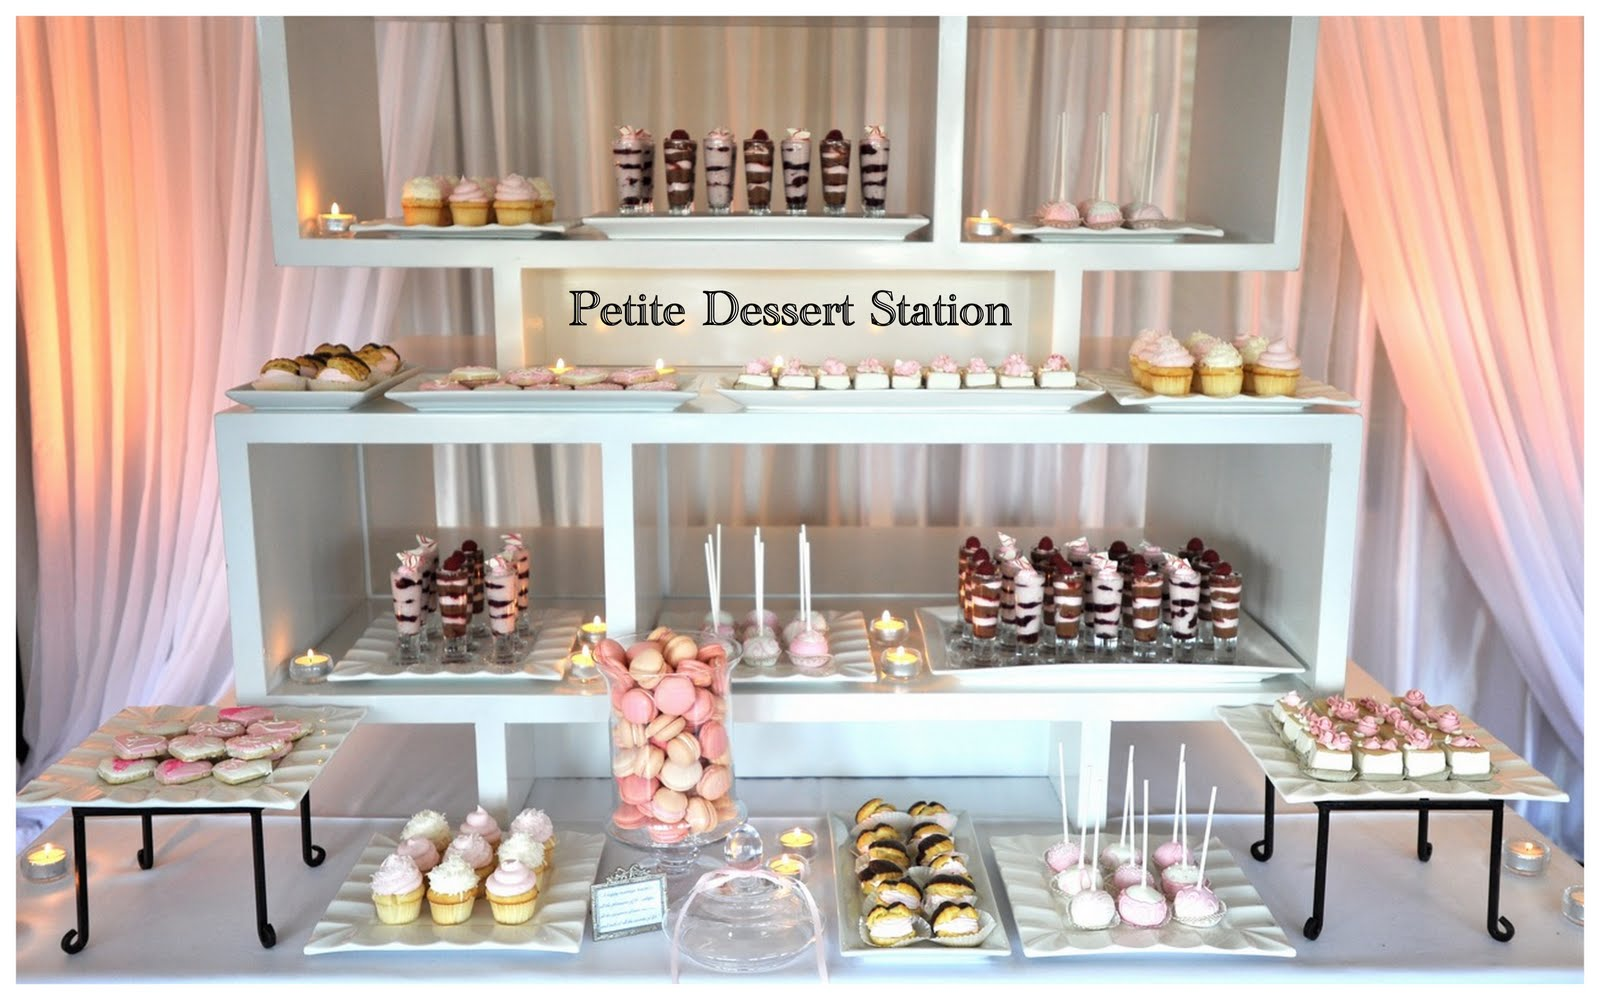 Now that your inspired with some wedding dessert bar ideas